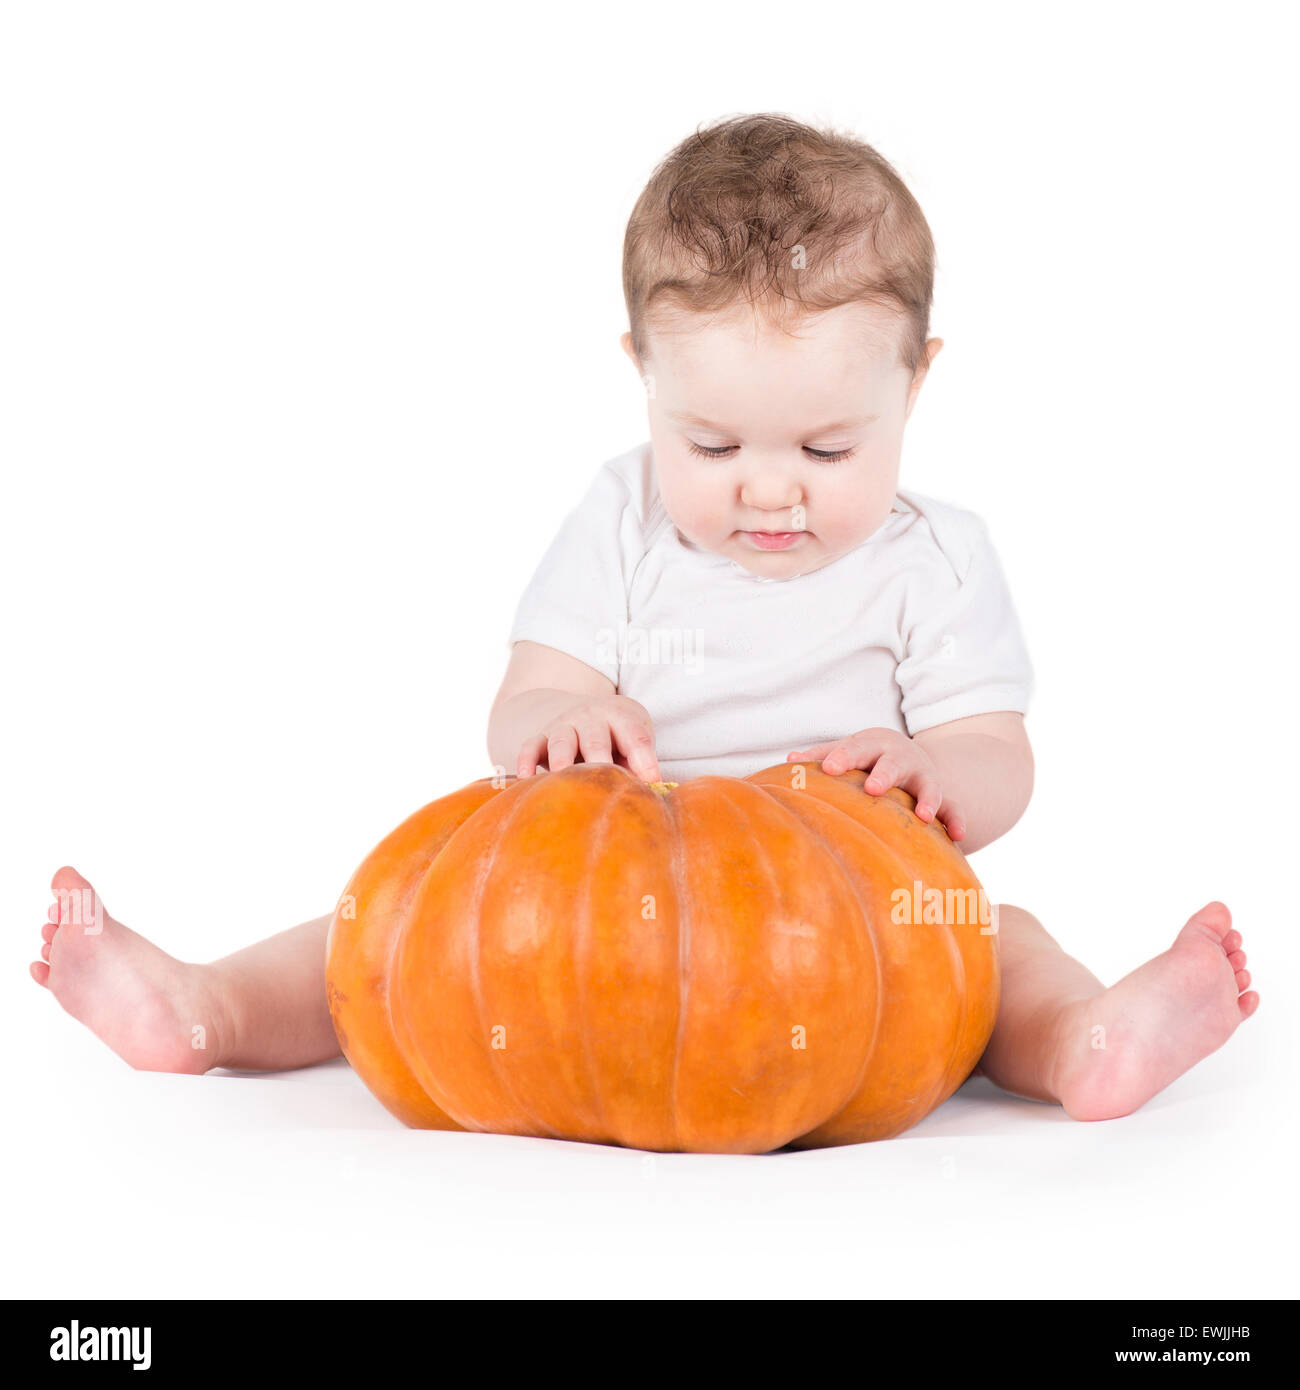 Funny laughing little baby sitting and playing on a huge pumpkin wearing a knitted pumpkin hat on white background - Stock Image